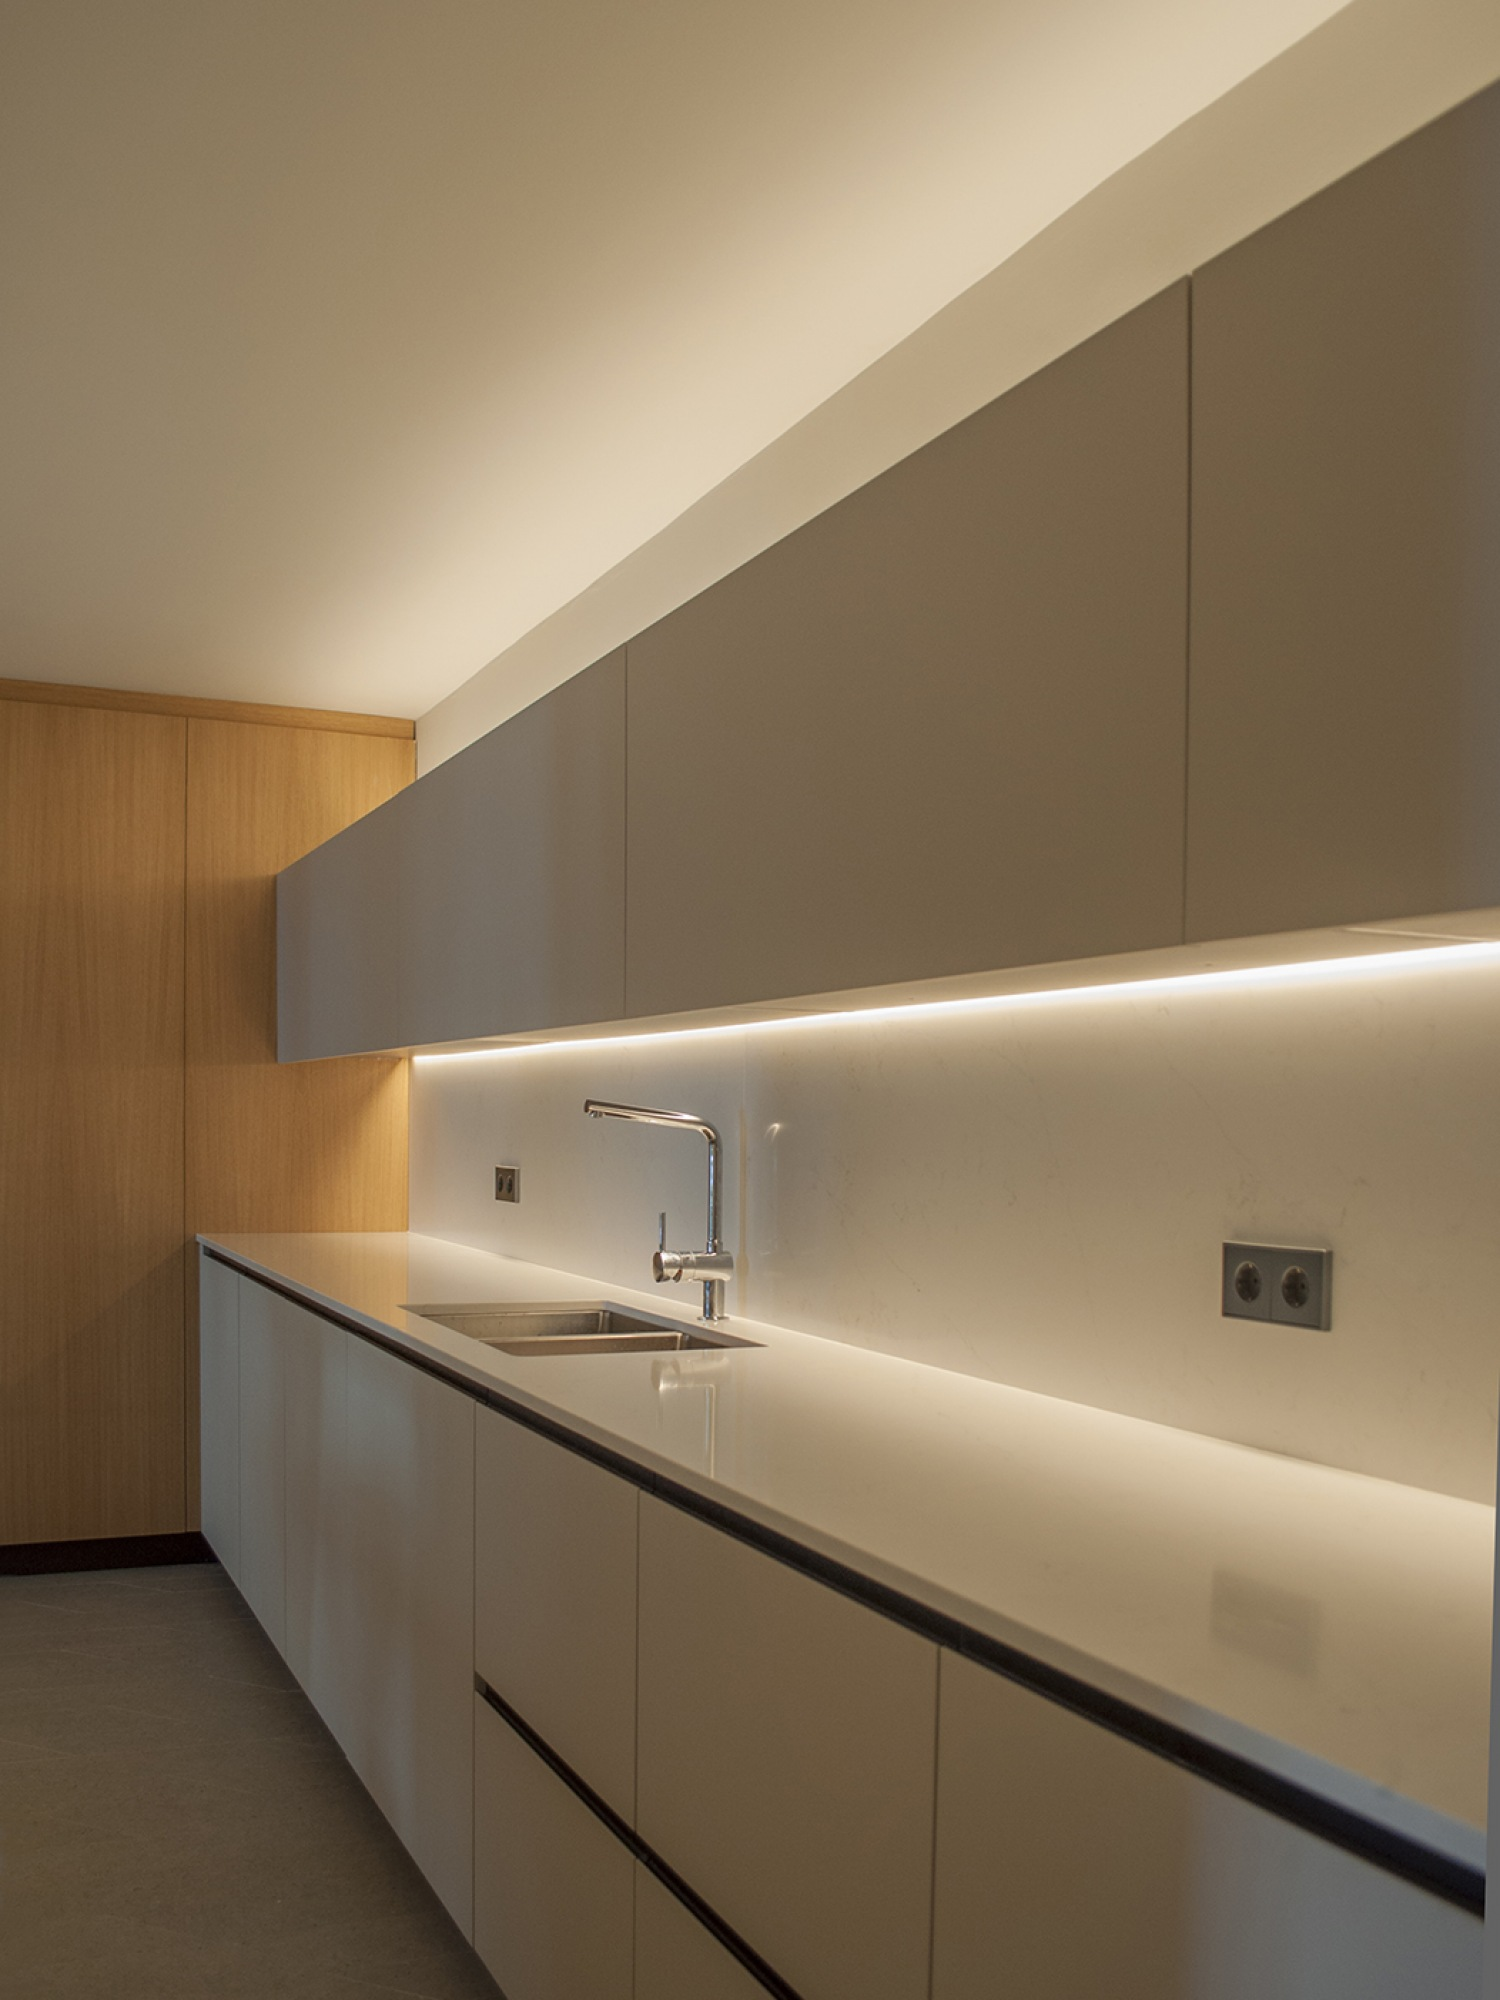 13-architecture-sitges-interior-design-barcelona-kitchen-modern-silestone-led-wood